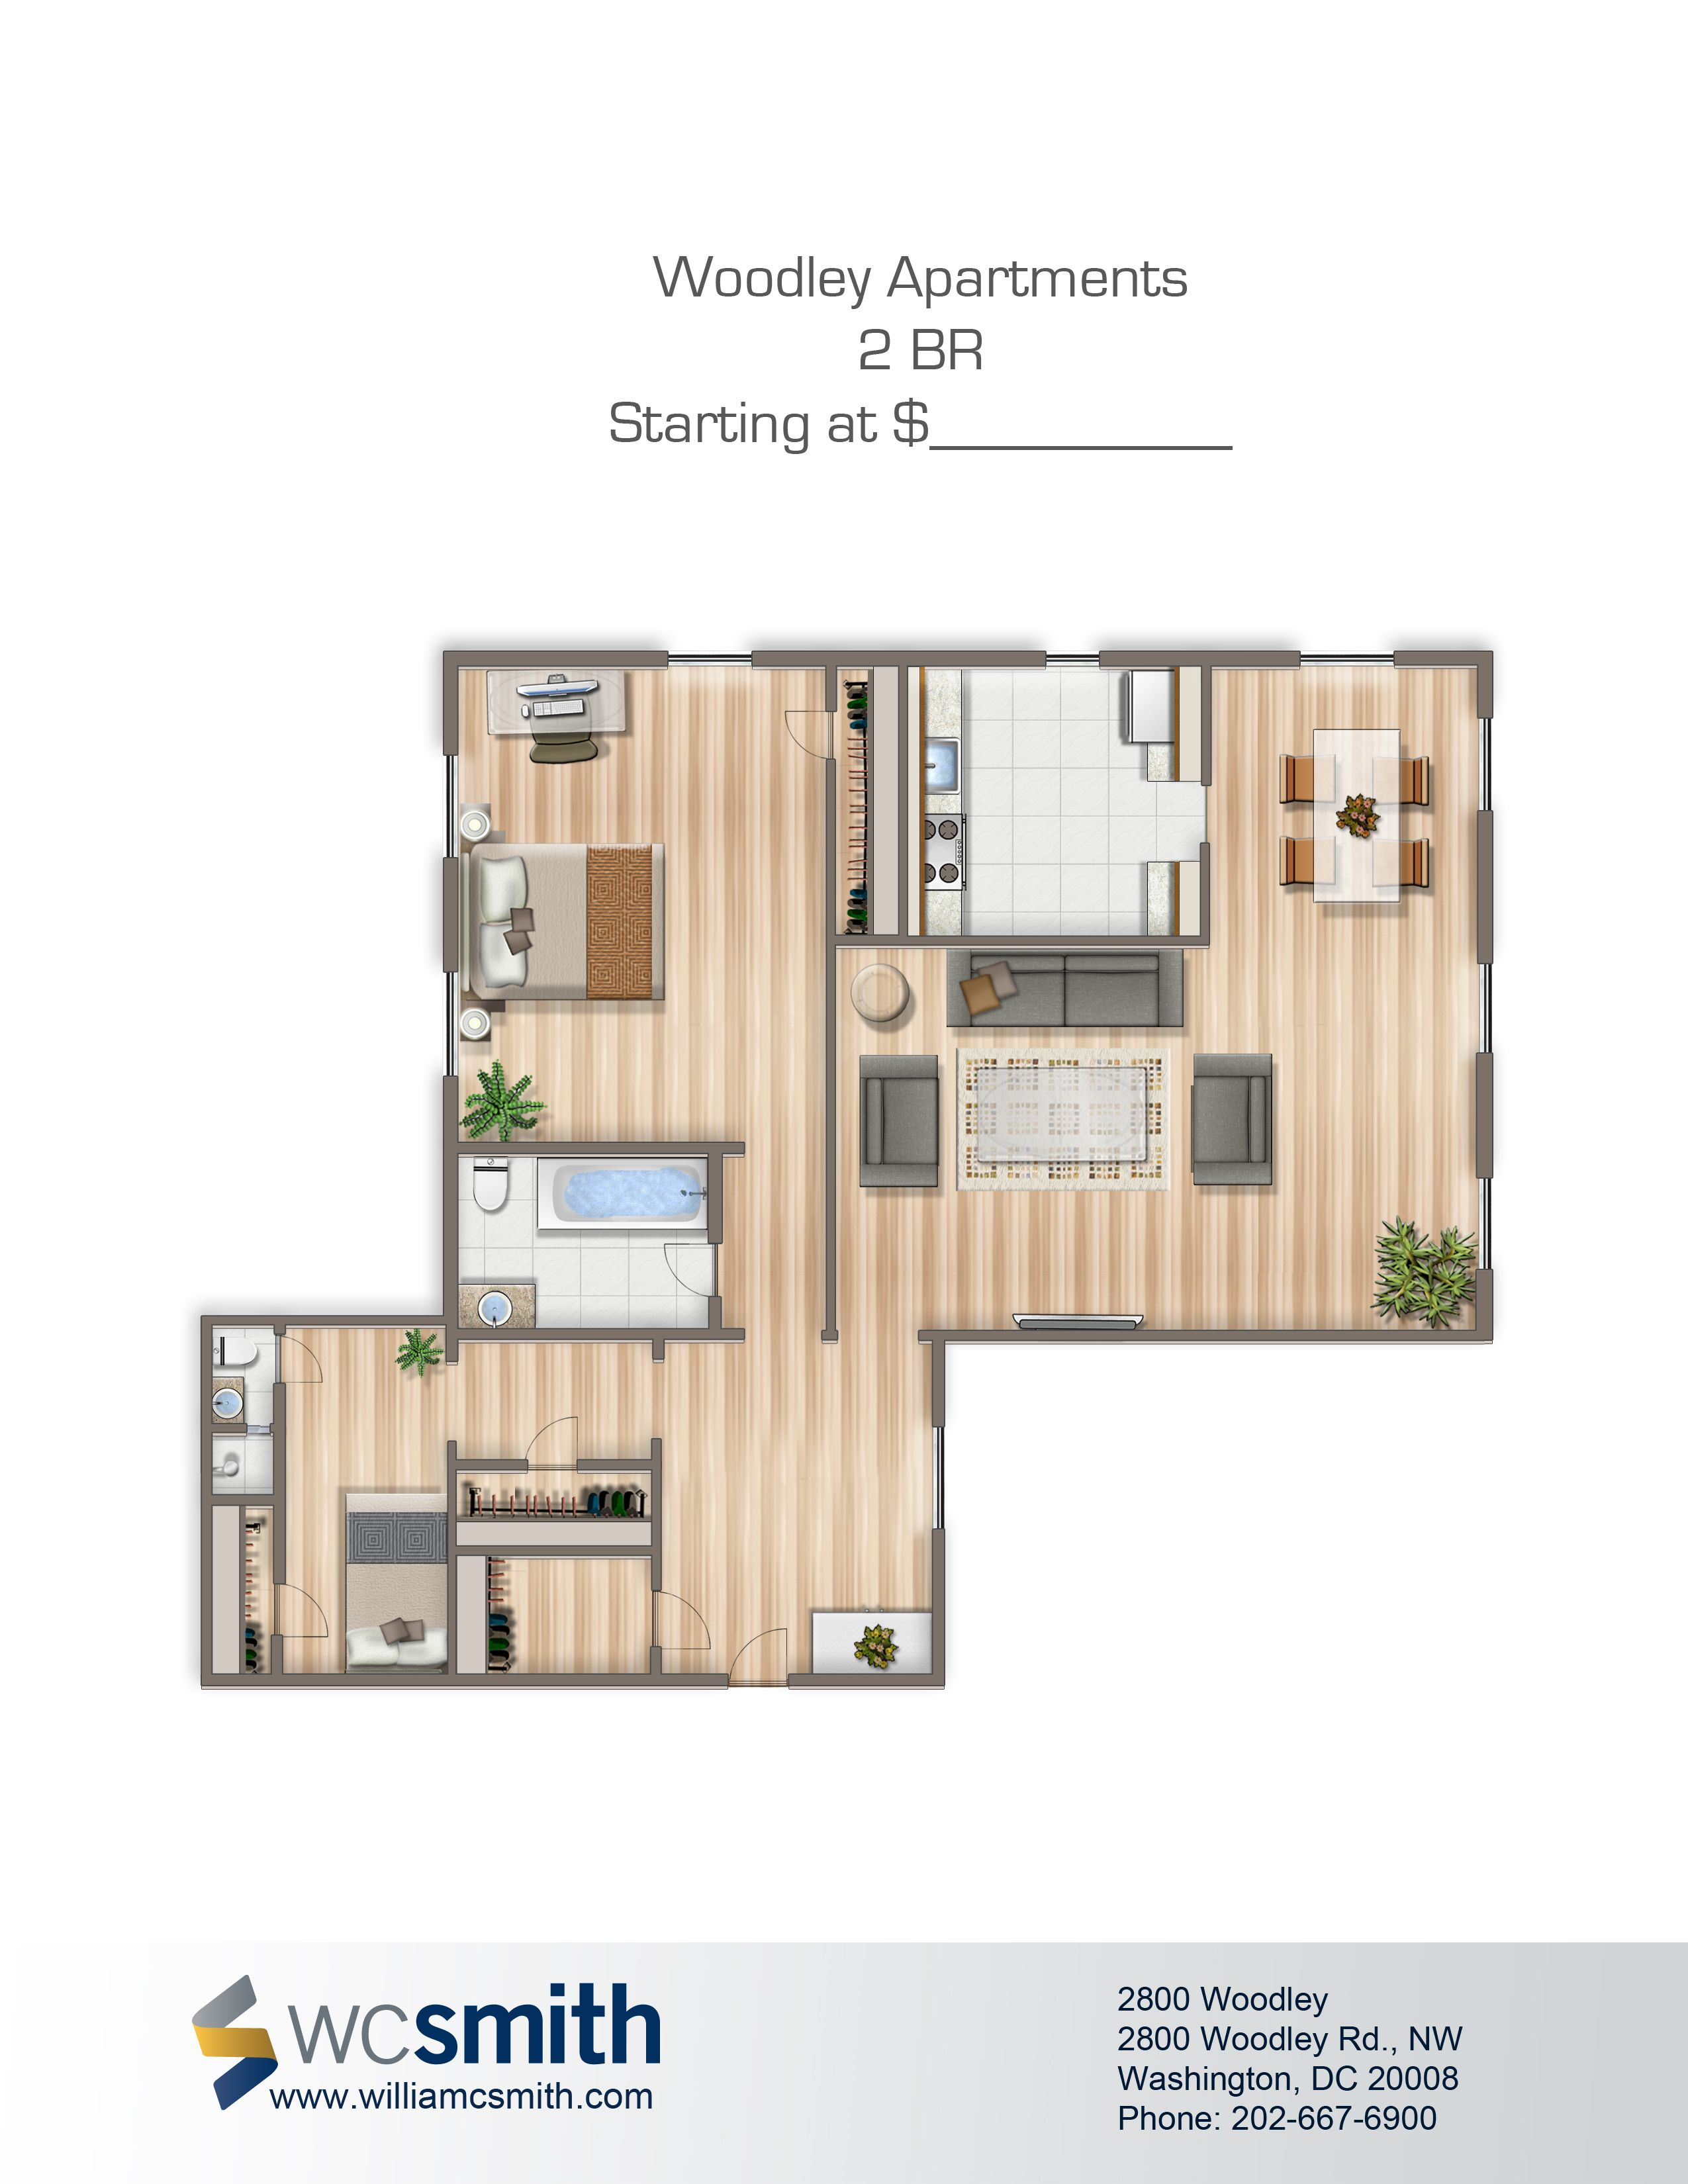 2 Bedroom Apartments For Rent In Dc Awesome 2800 Woodley Apartments In Woodley Park  Apartments Bedrooms And Decorating Inspiration